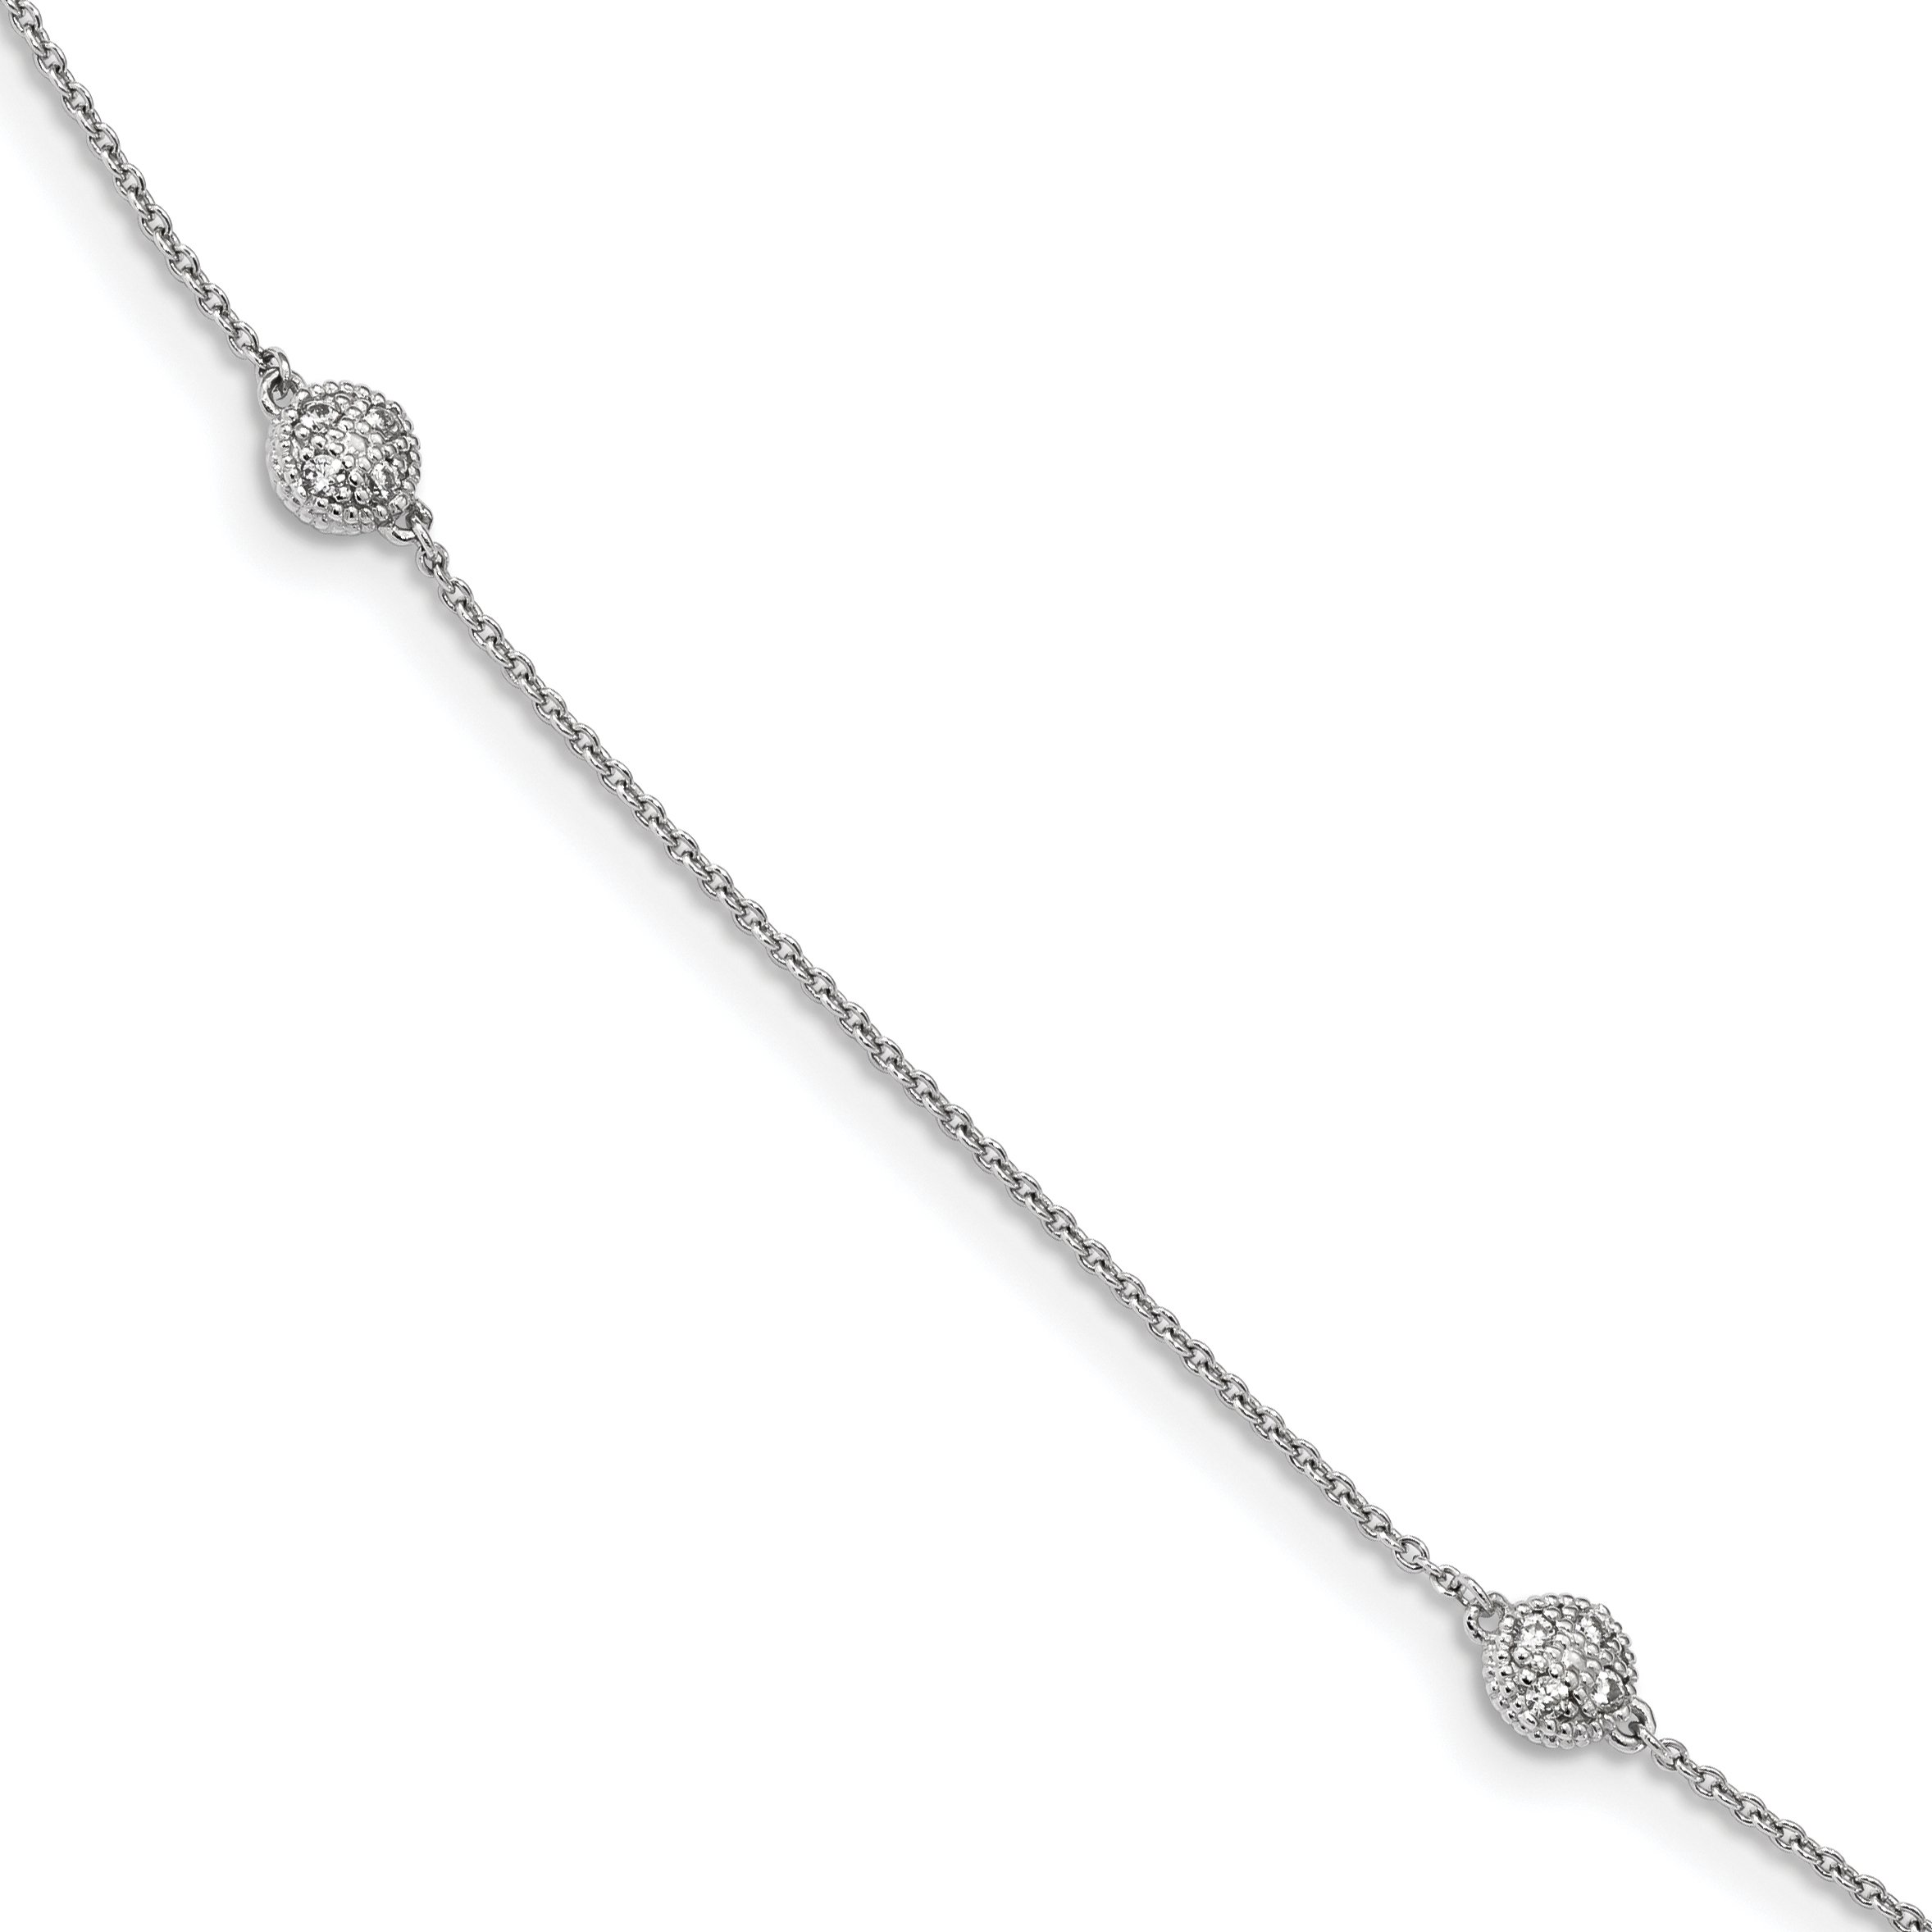 ICE CARATS 925 Sterling Silver Cubic Zirconia Cz Micro 14 Station Chain Necklace Bead Fine Jewelry Gift Set For Women Heart